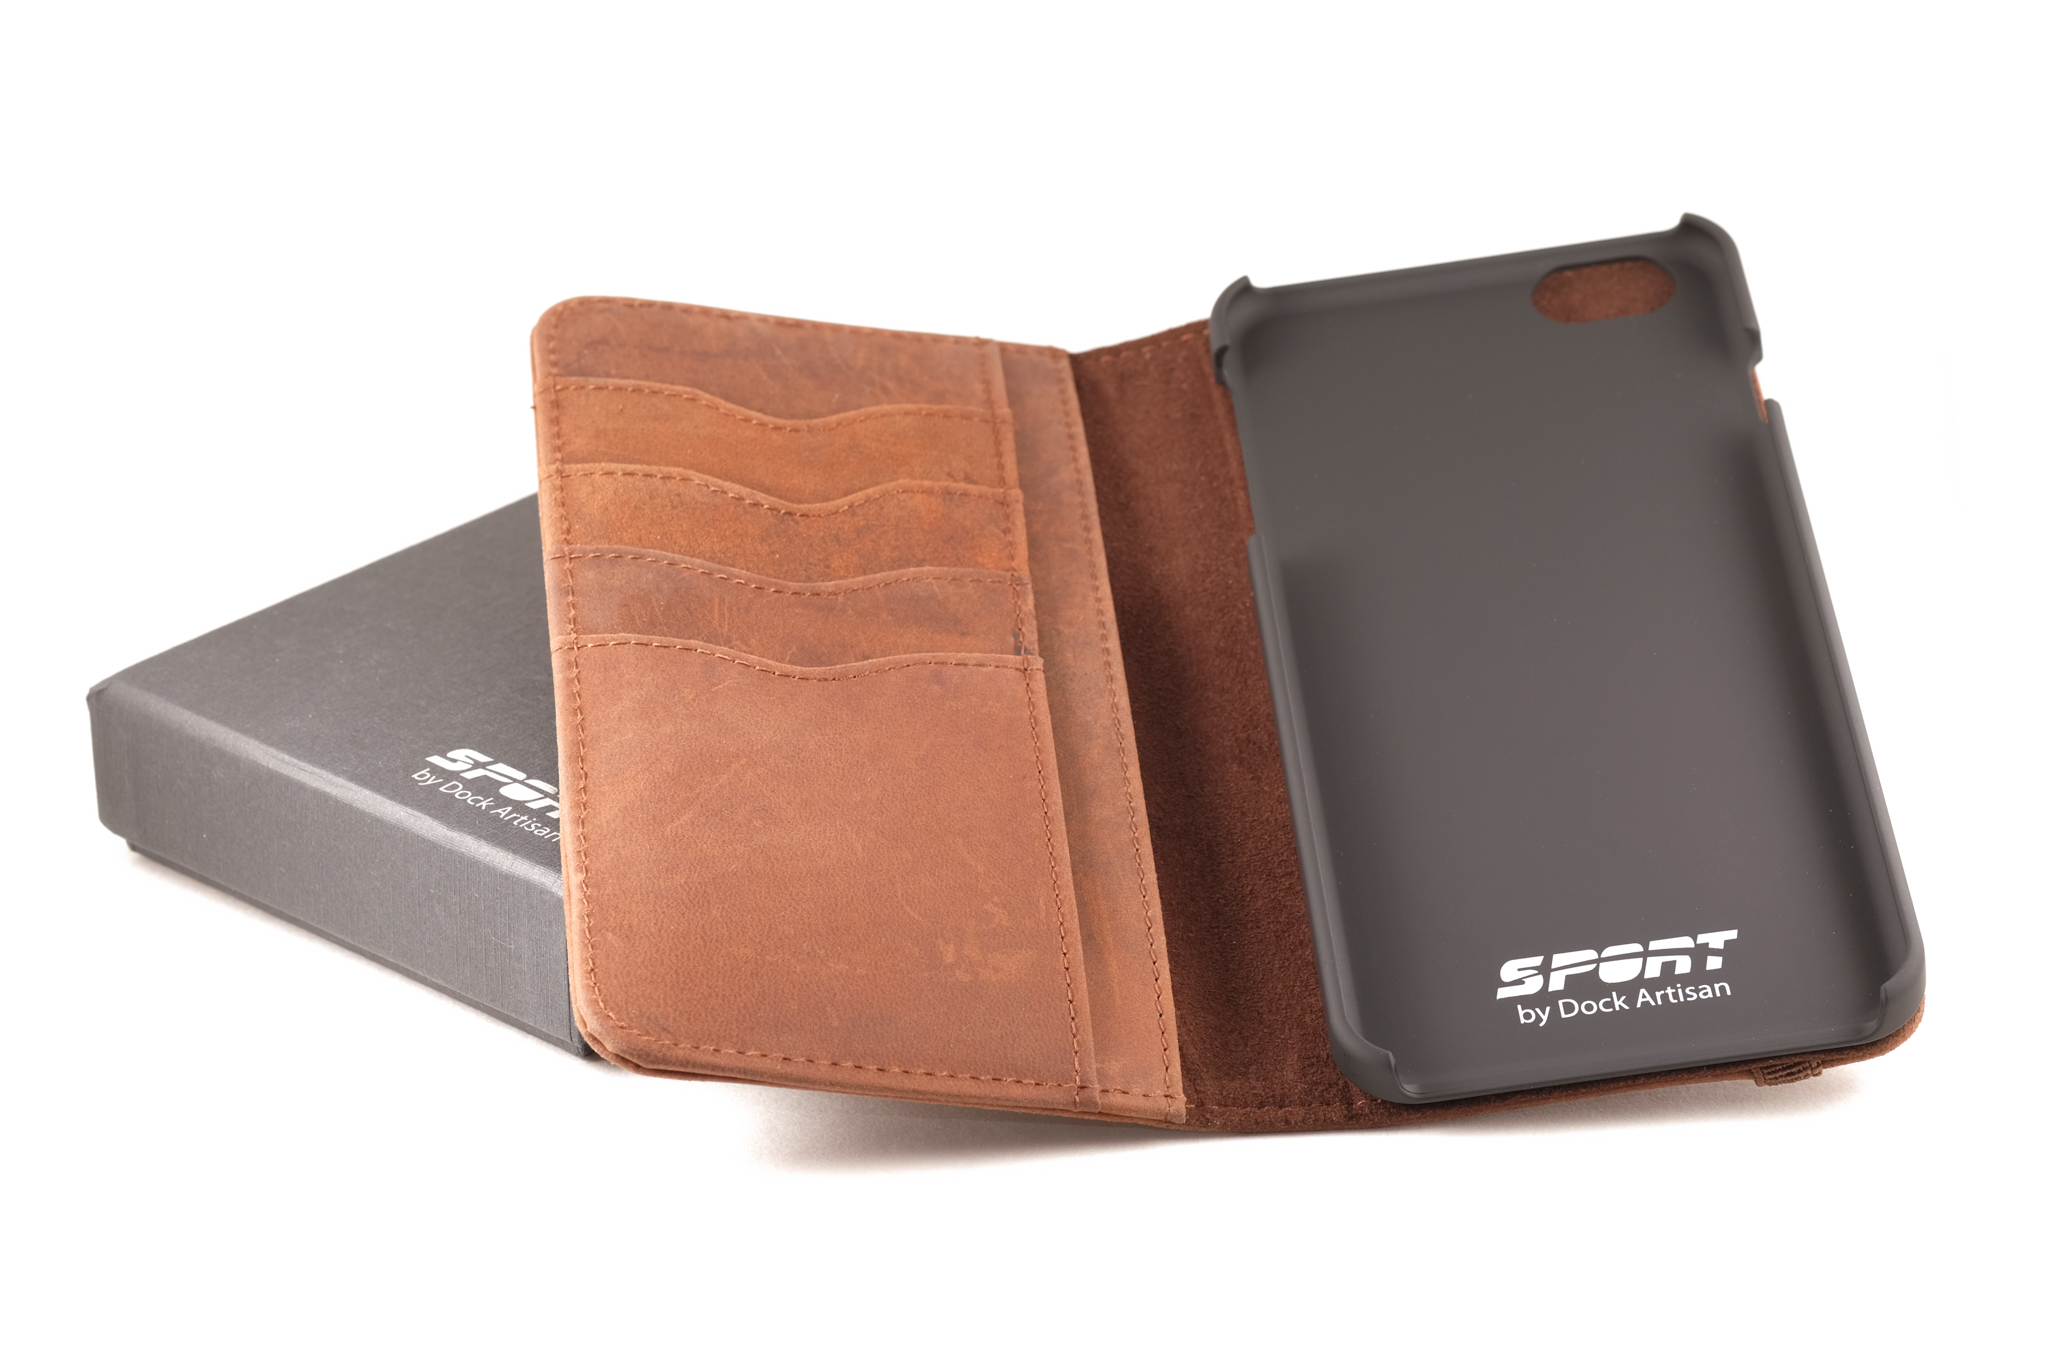 Case open, showing off the 4 credit card slots.